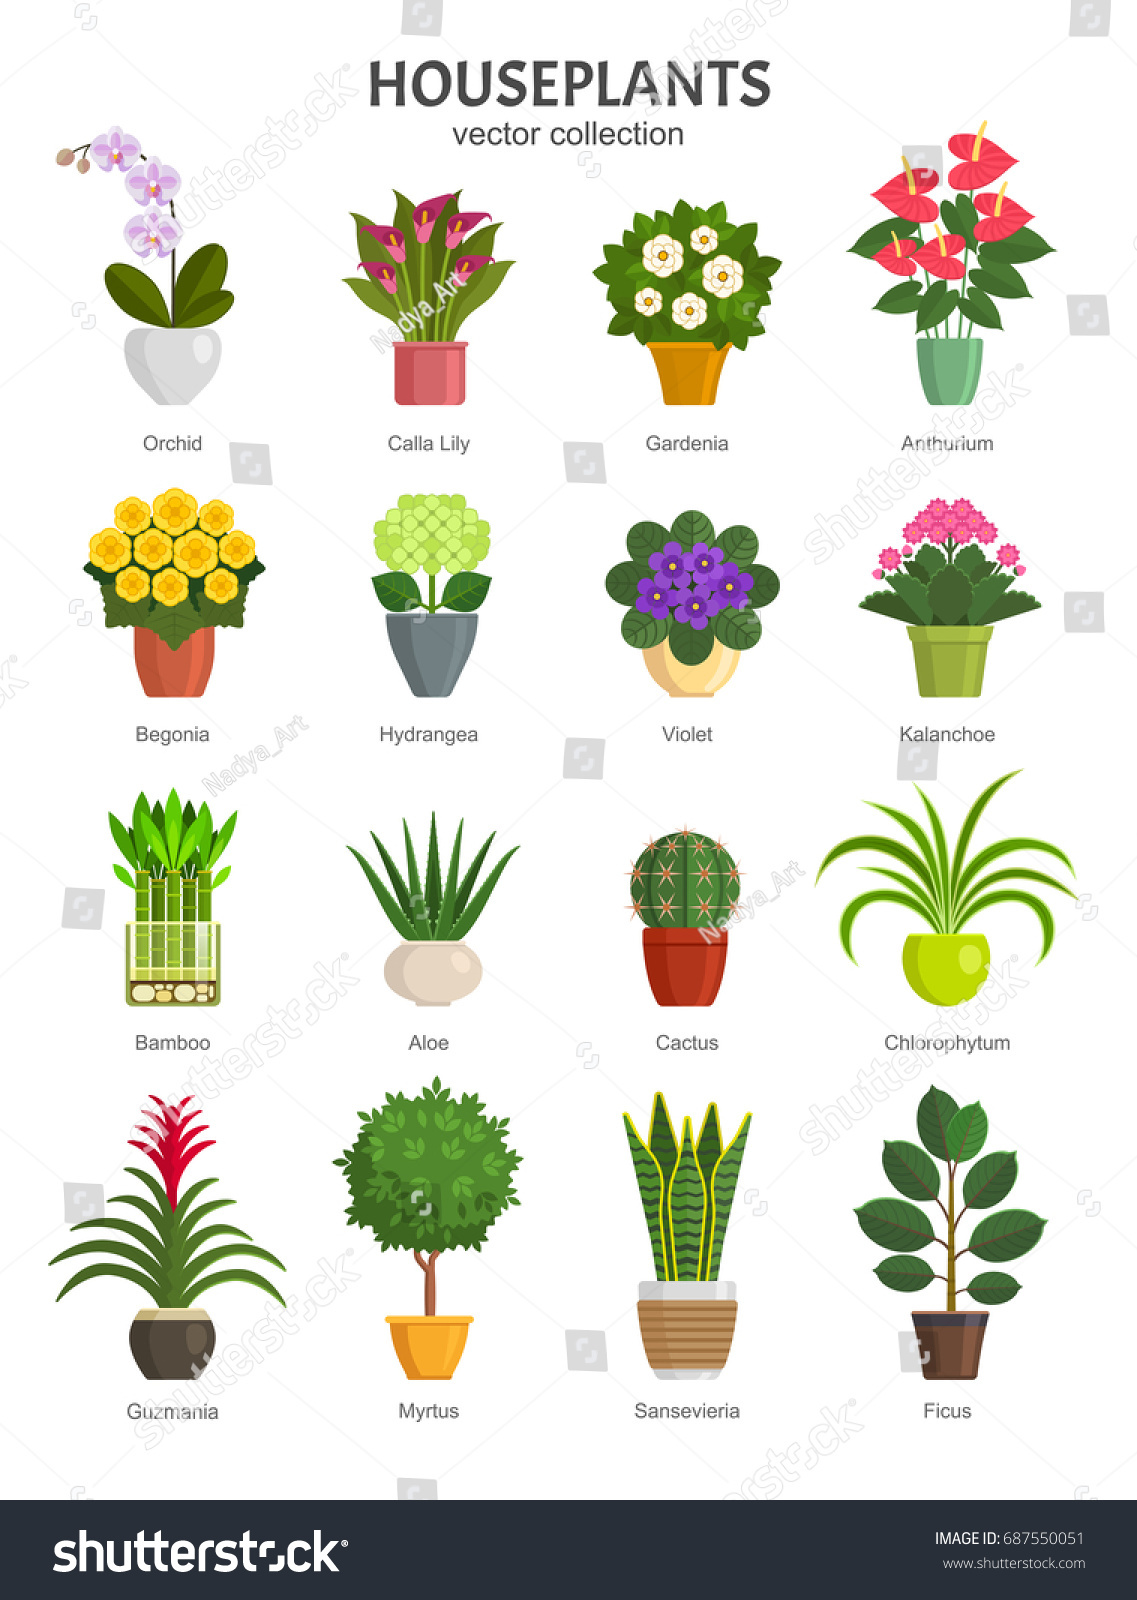 Houseplants Collection Vector Illustration Most Popular Stock Vector